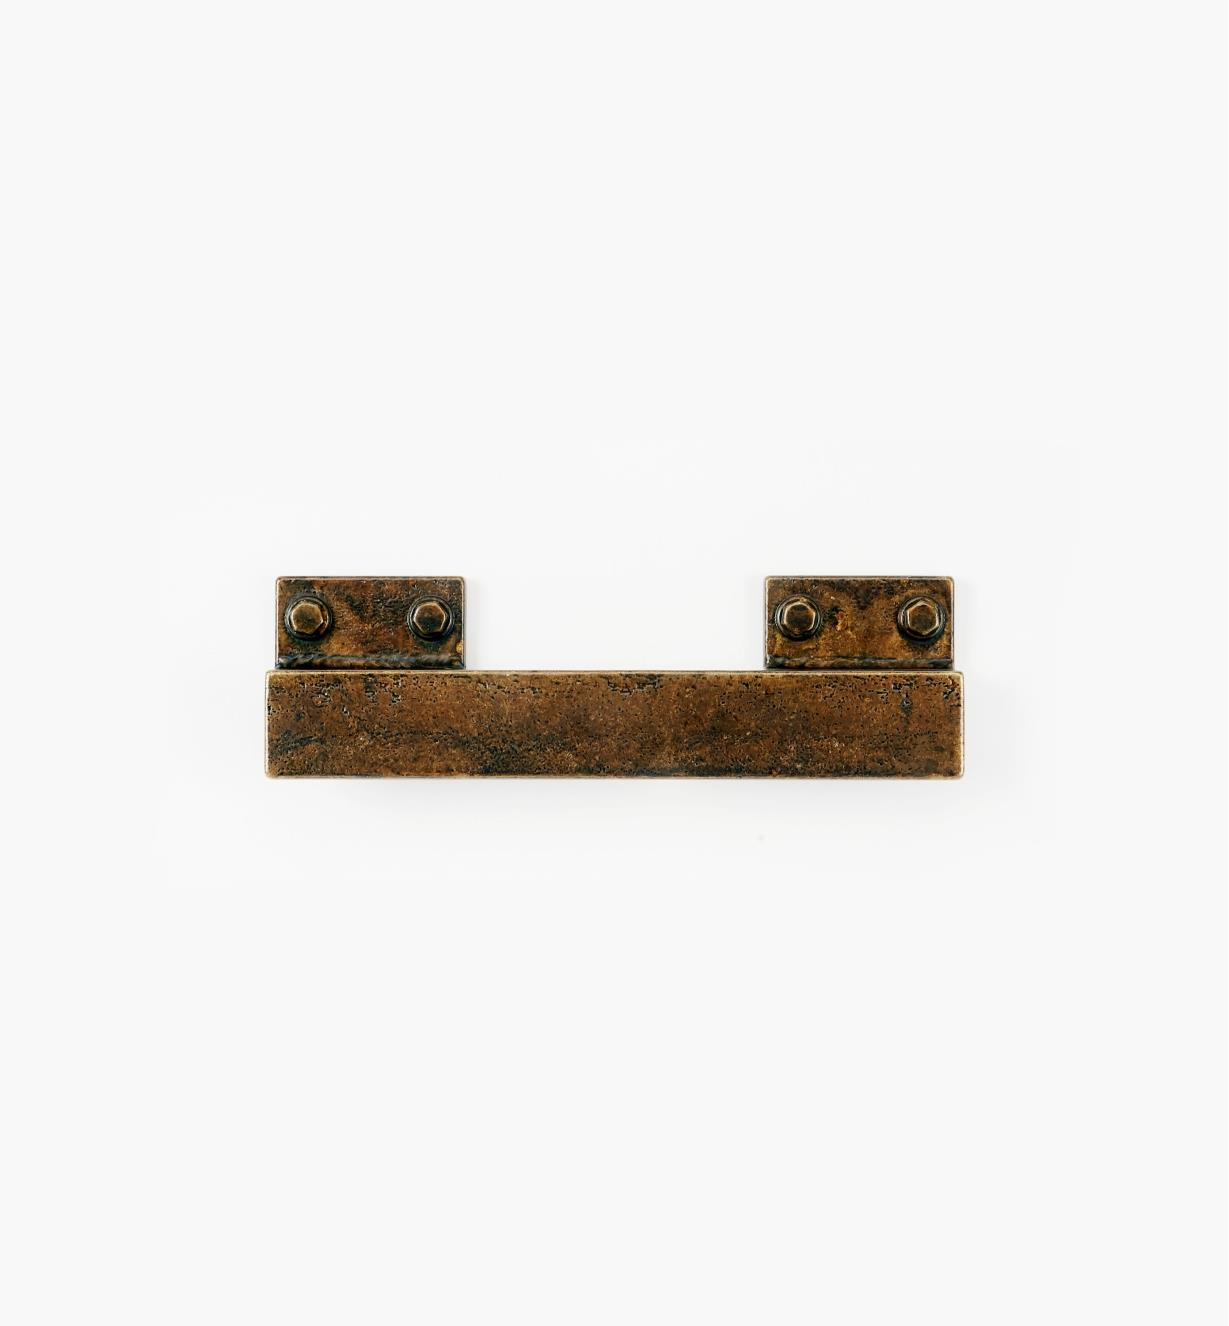 00A7831 - Factory Hardware 160mm/96mm Old Brass Handle, each